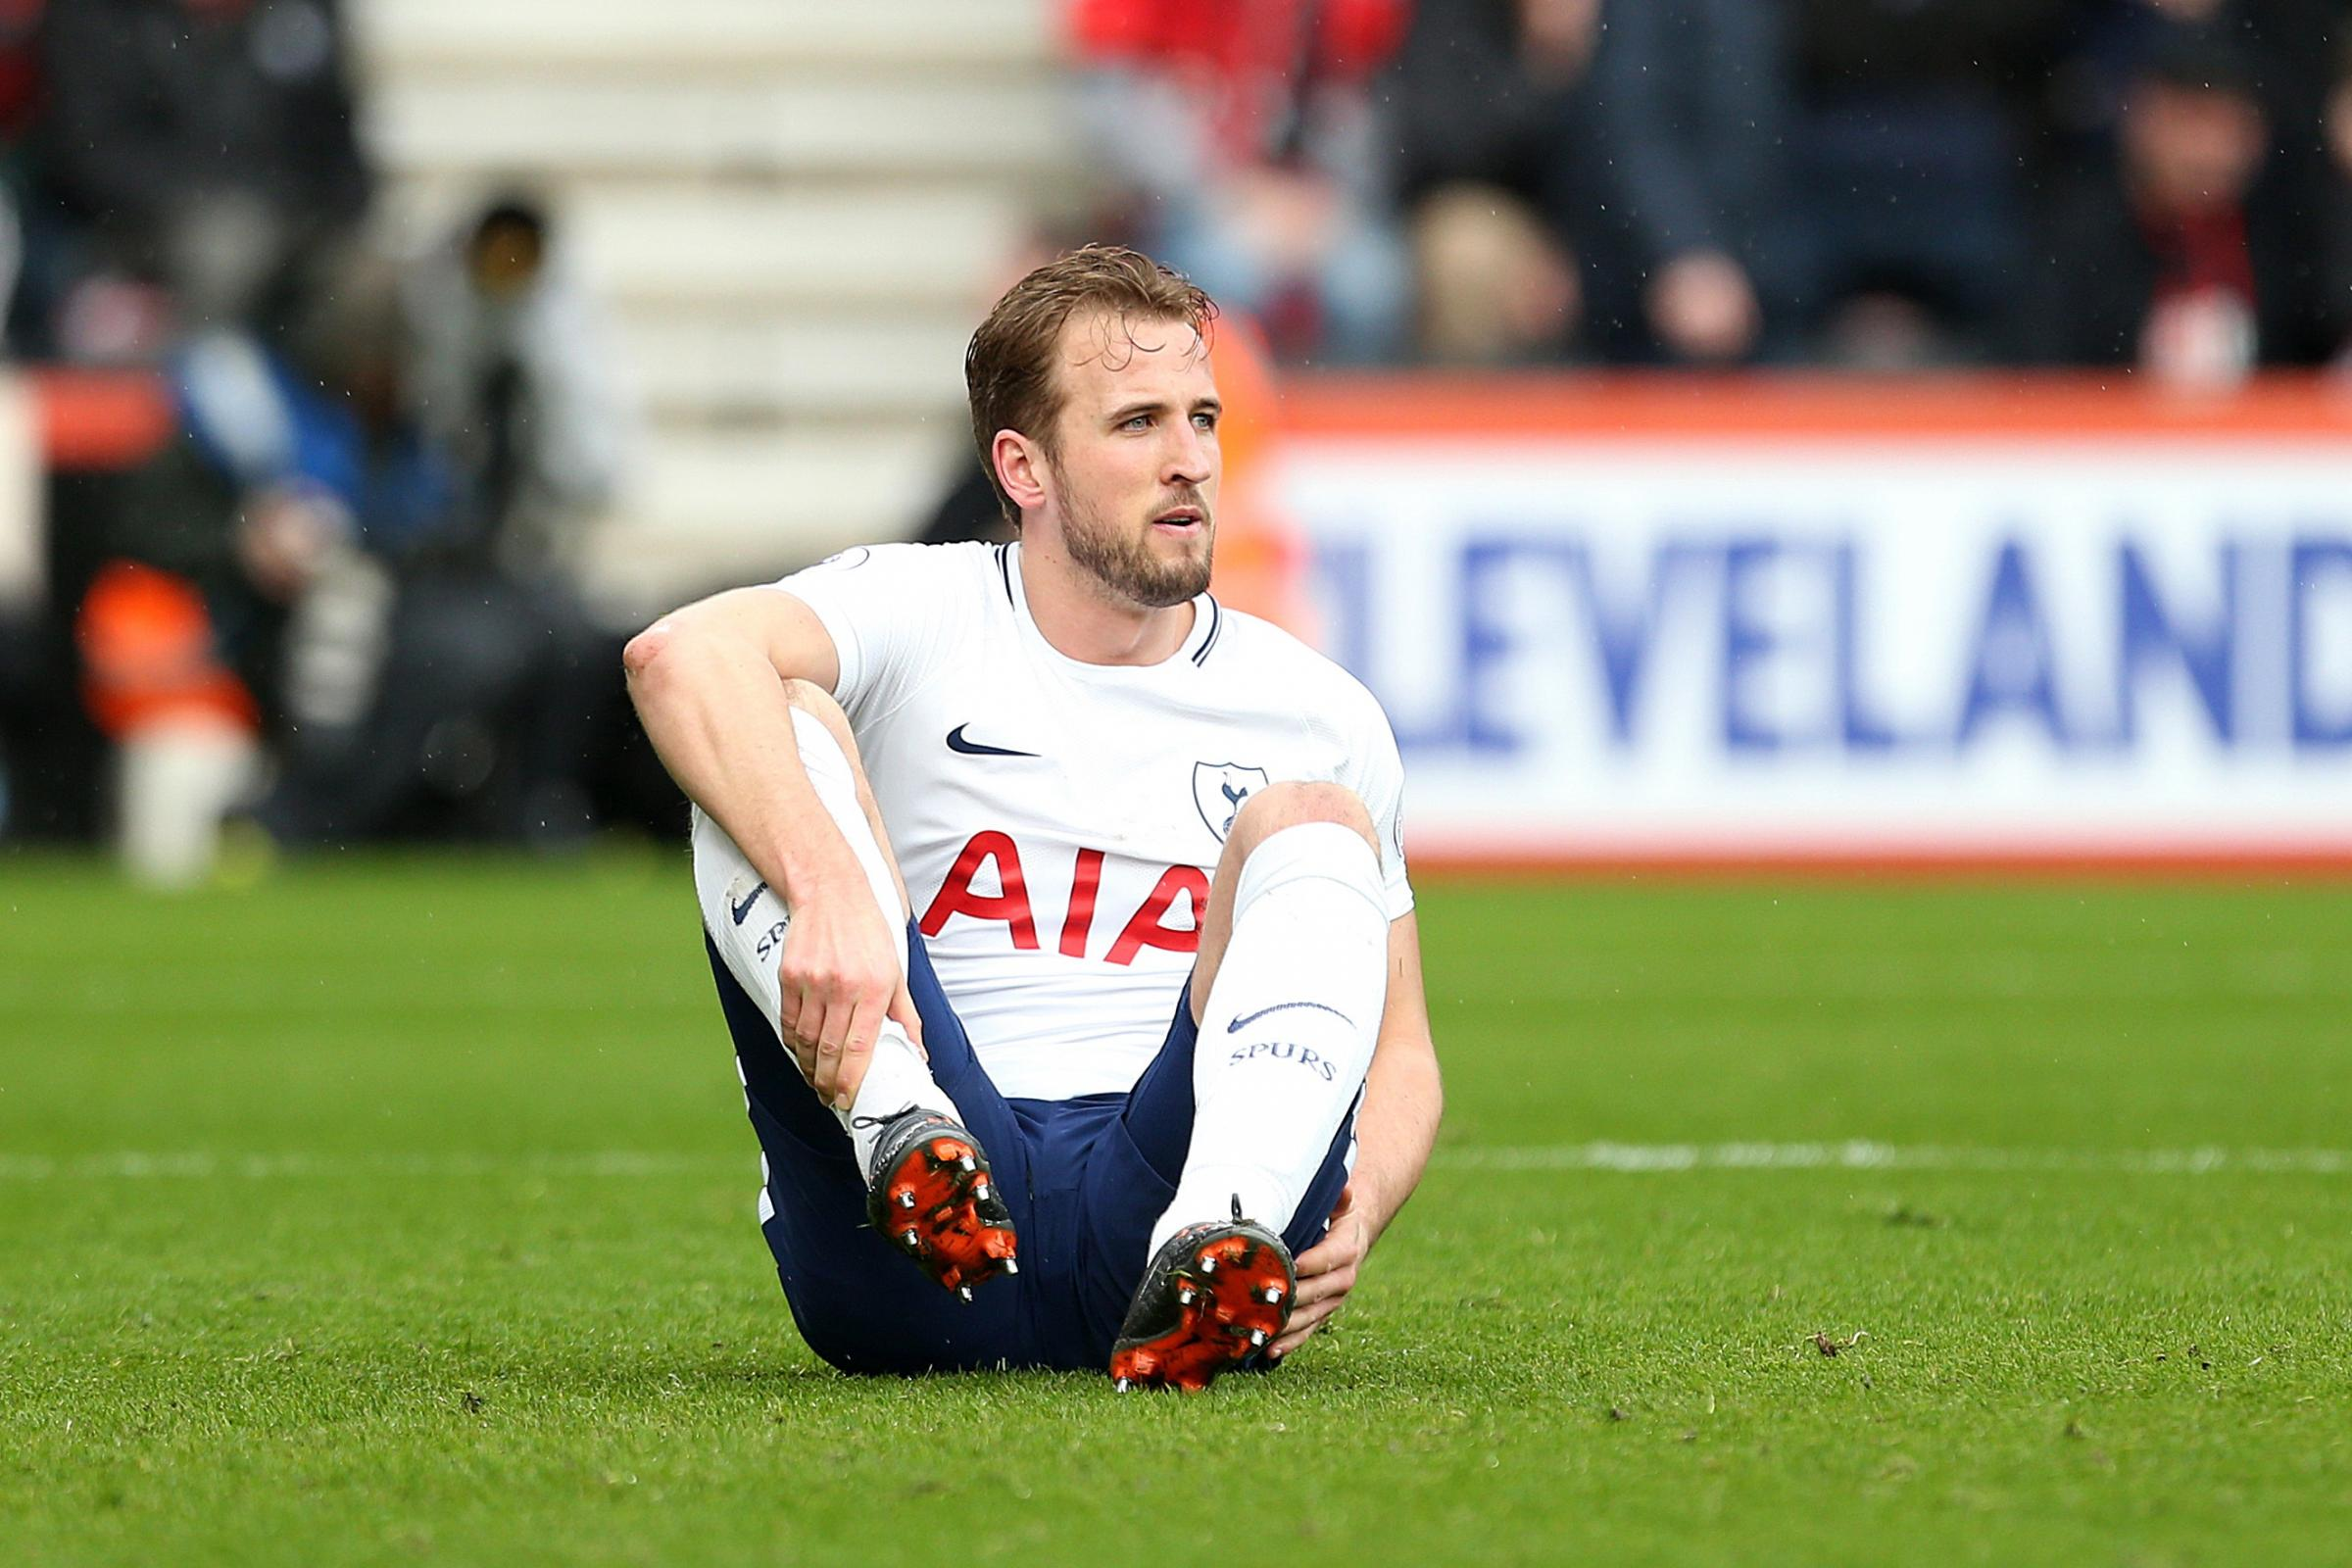 Tottenham are still waiting to find out the full extent of Harry Kane's injury (Steve Paston/EMPICS)